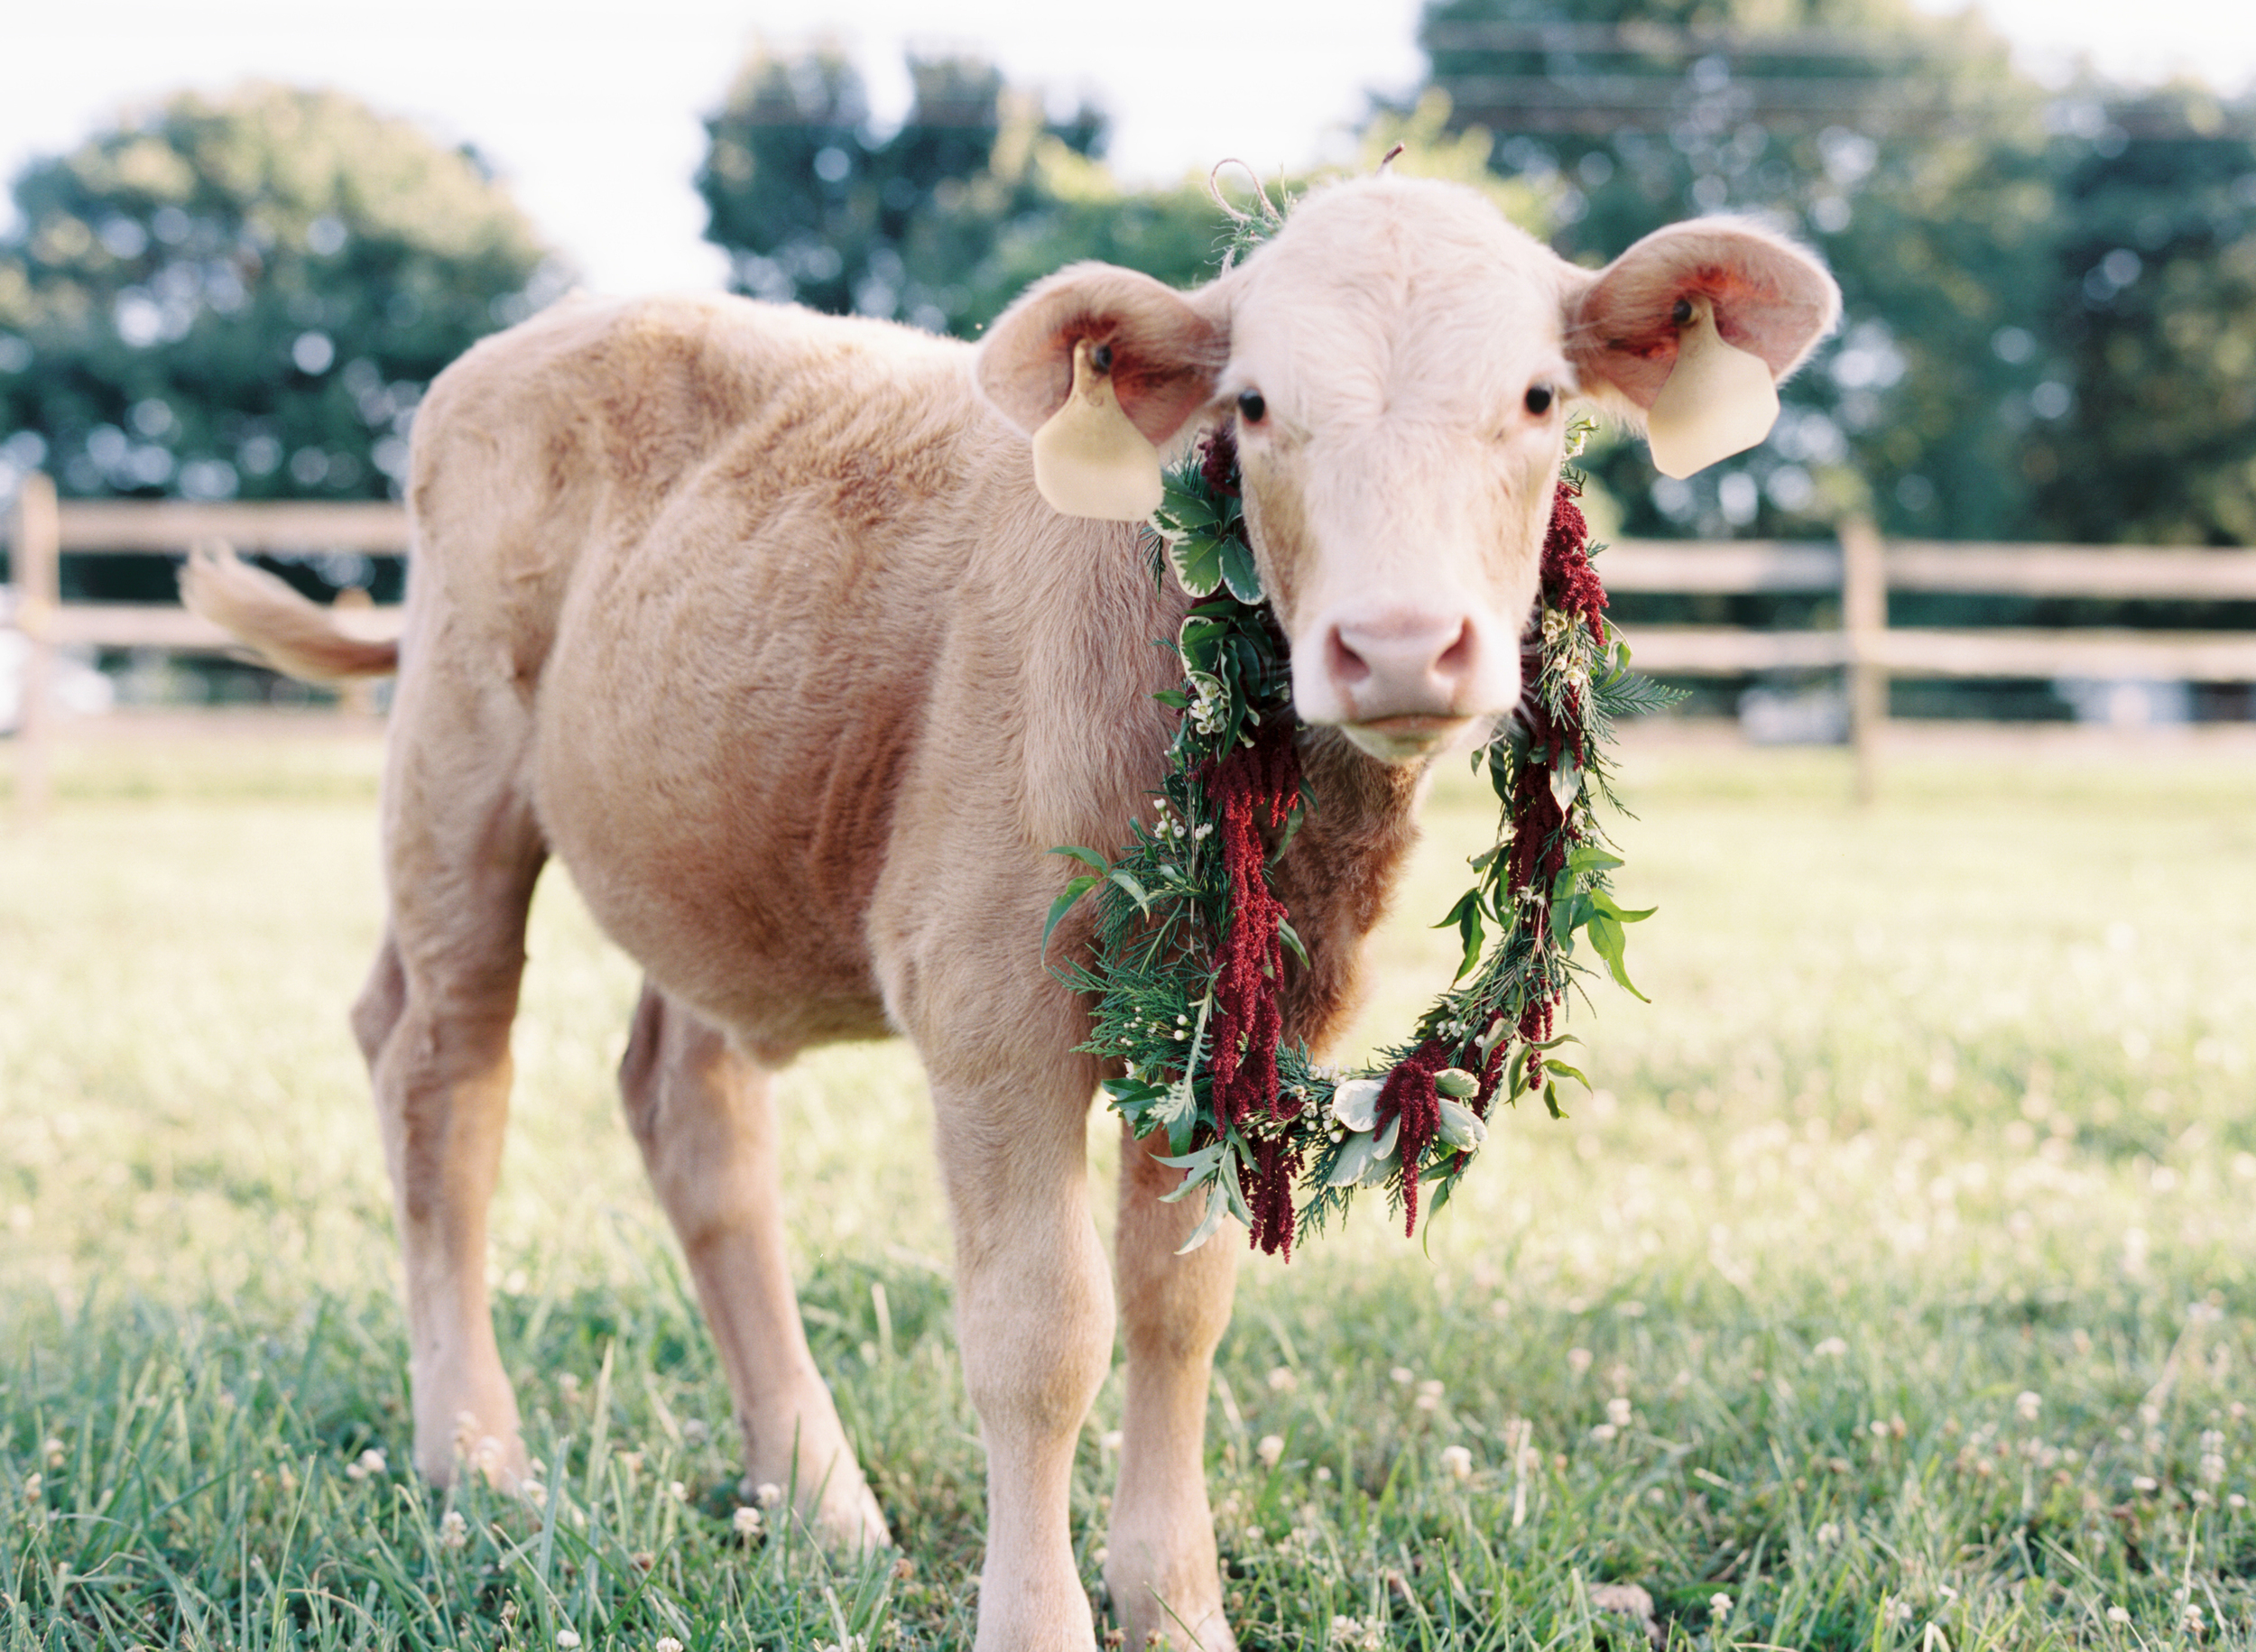 Cow with flower wreath